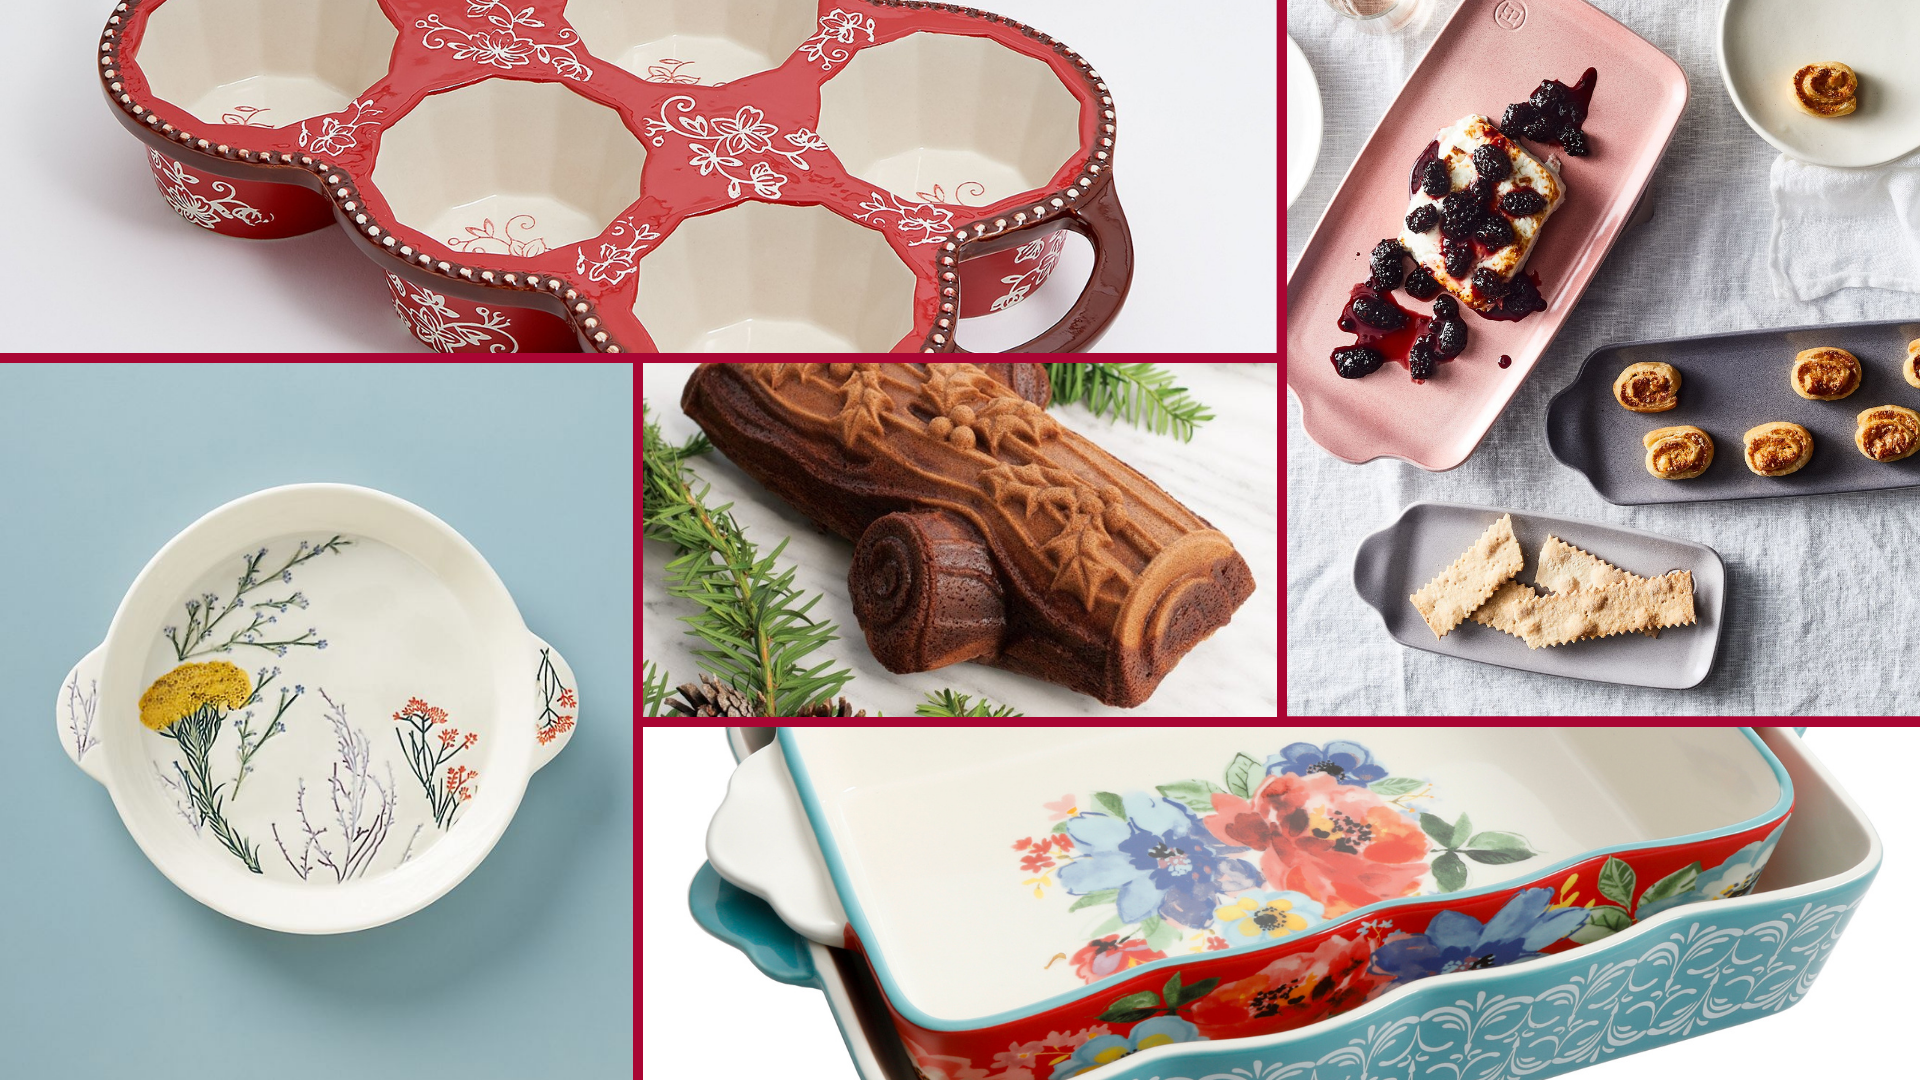 7 Best Baking Pans of 2020 to Pretty Up Your Table - Woman's World